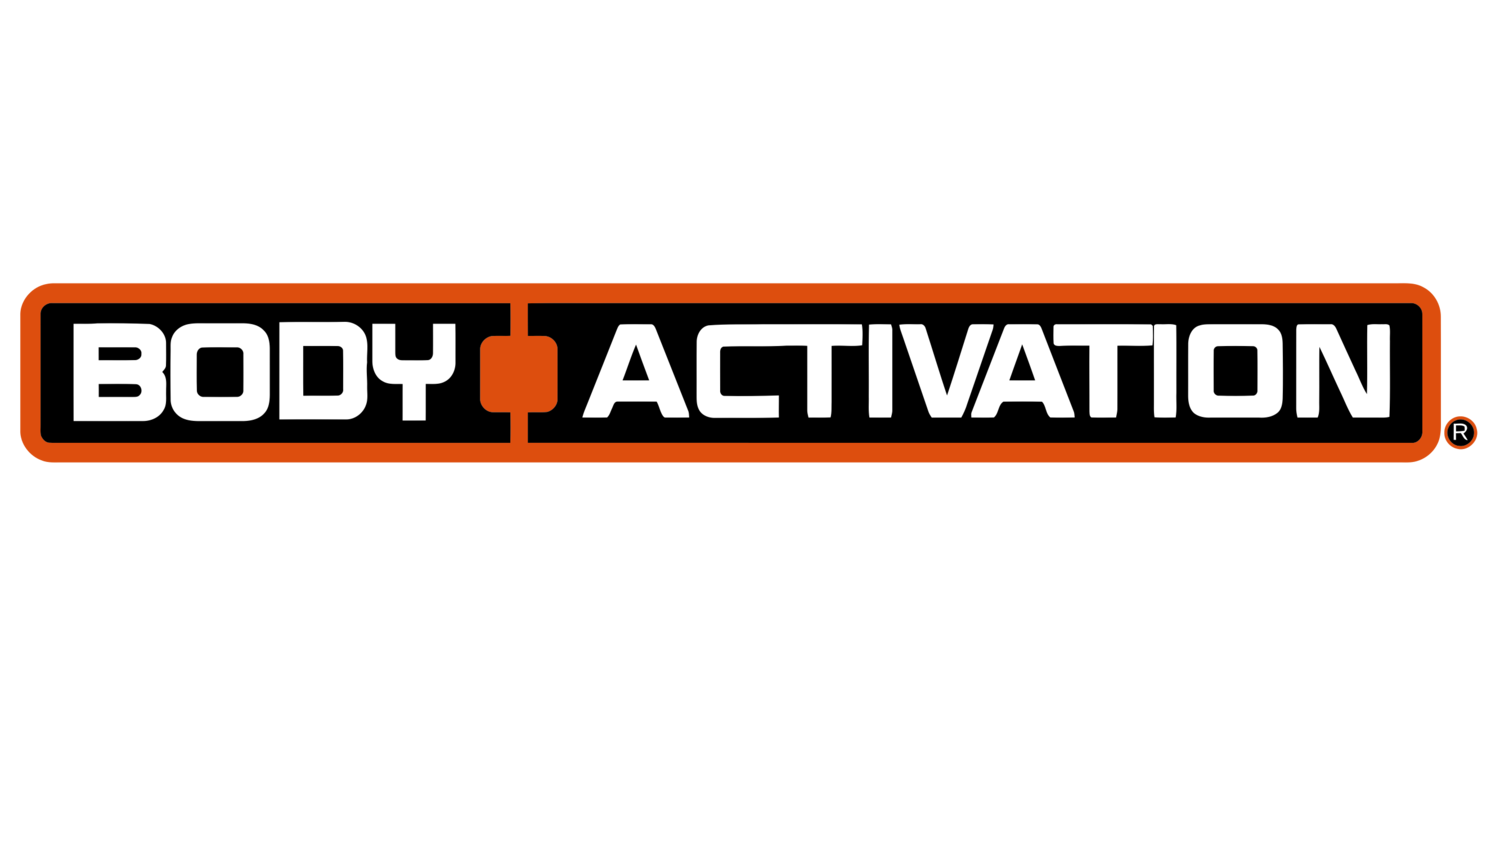 Body Activation